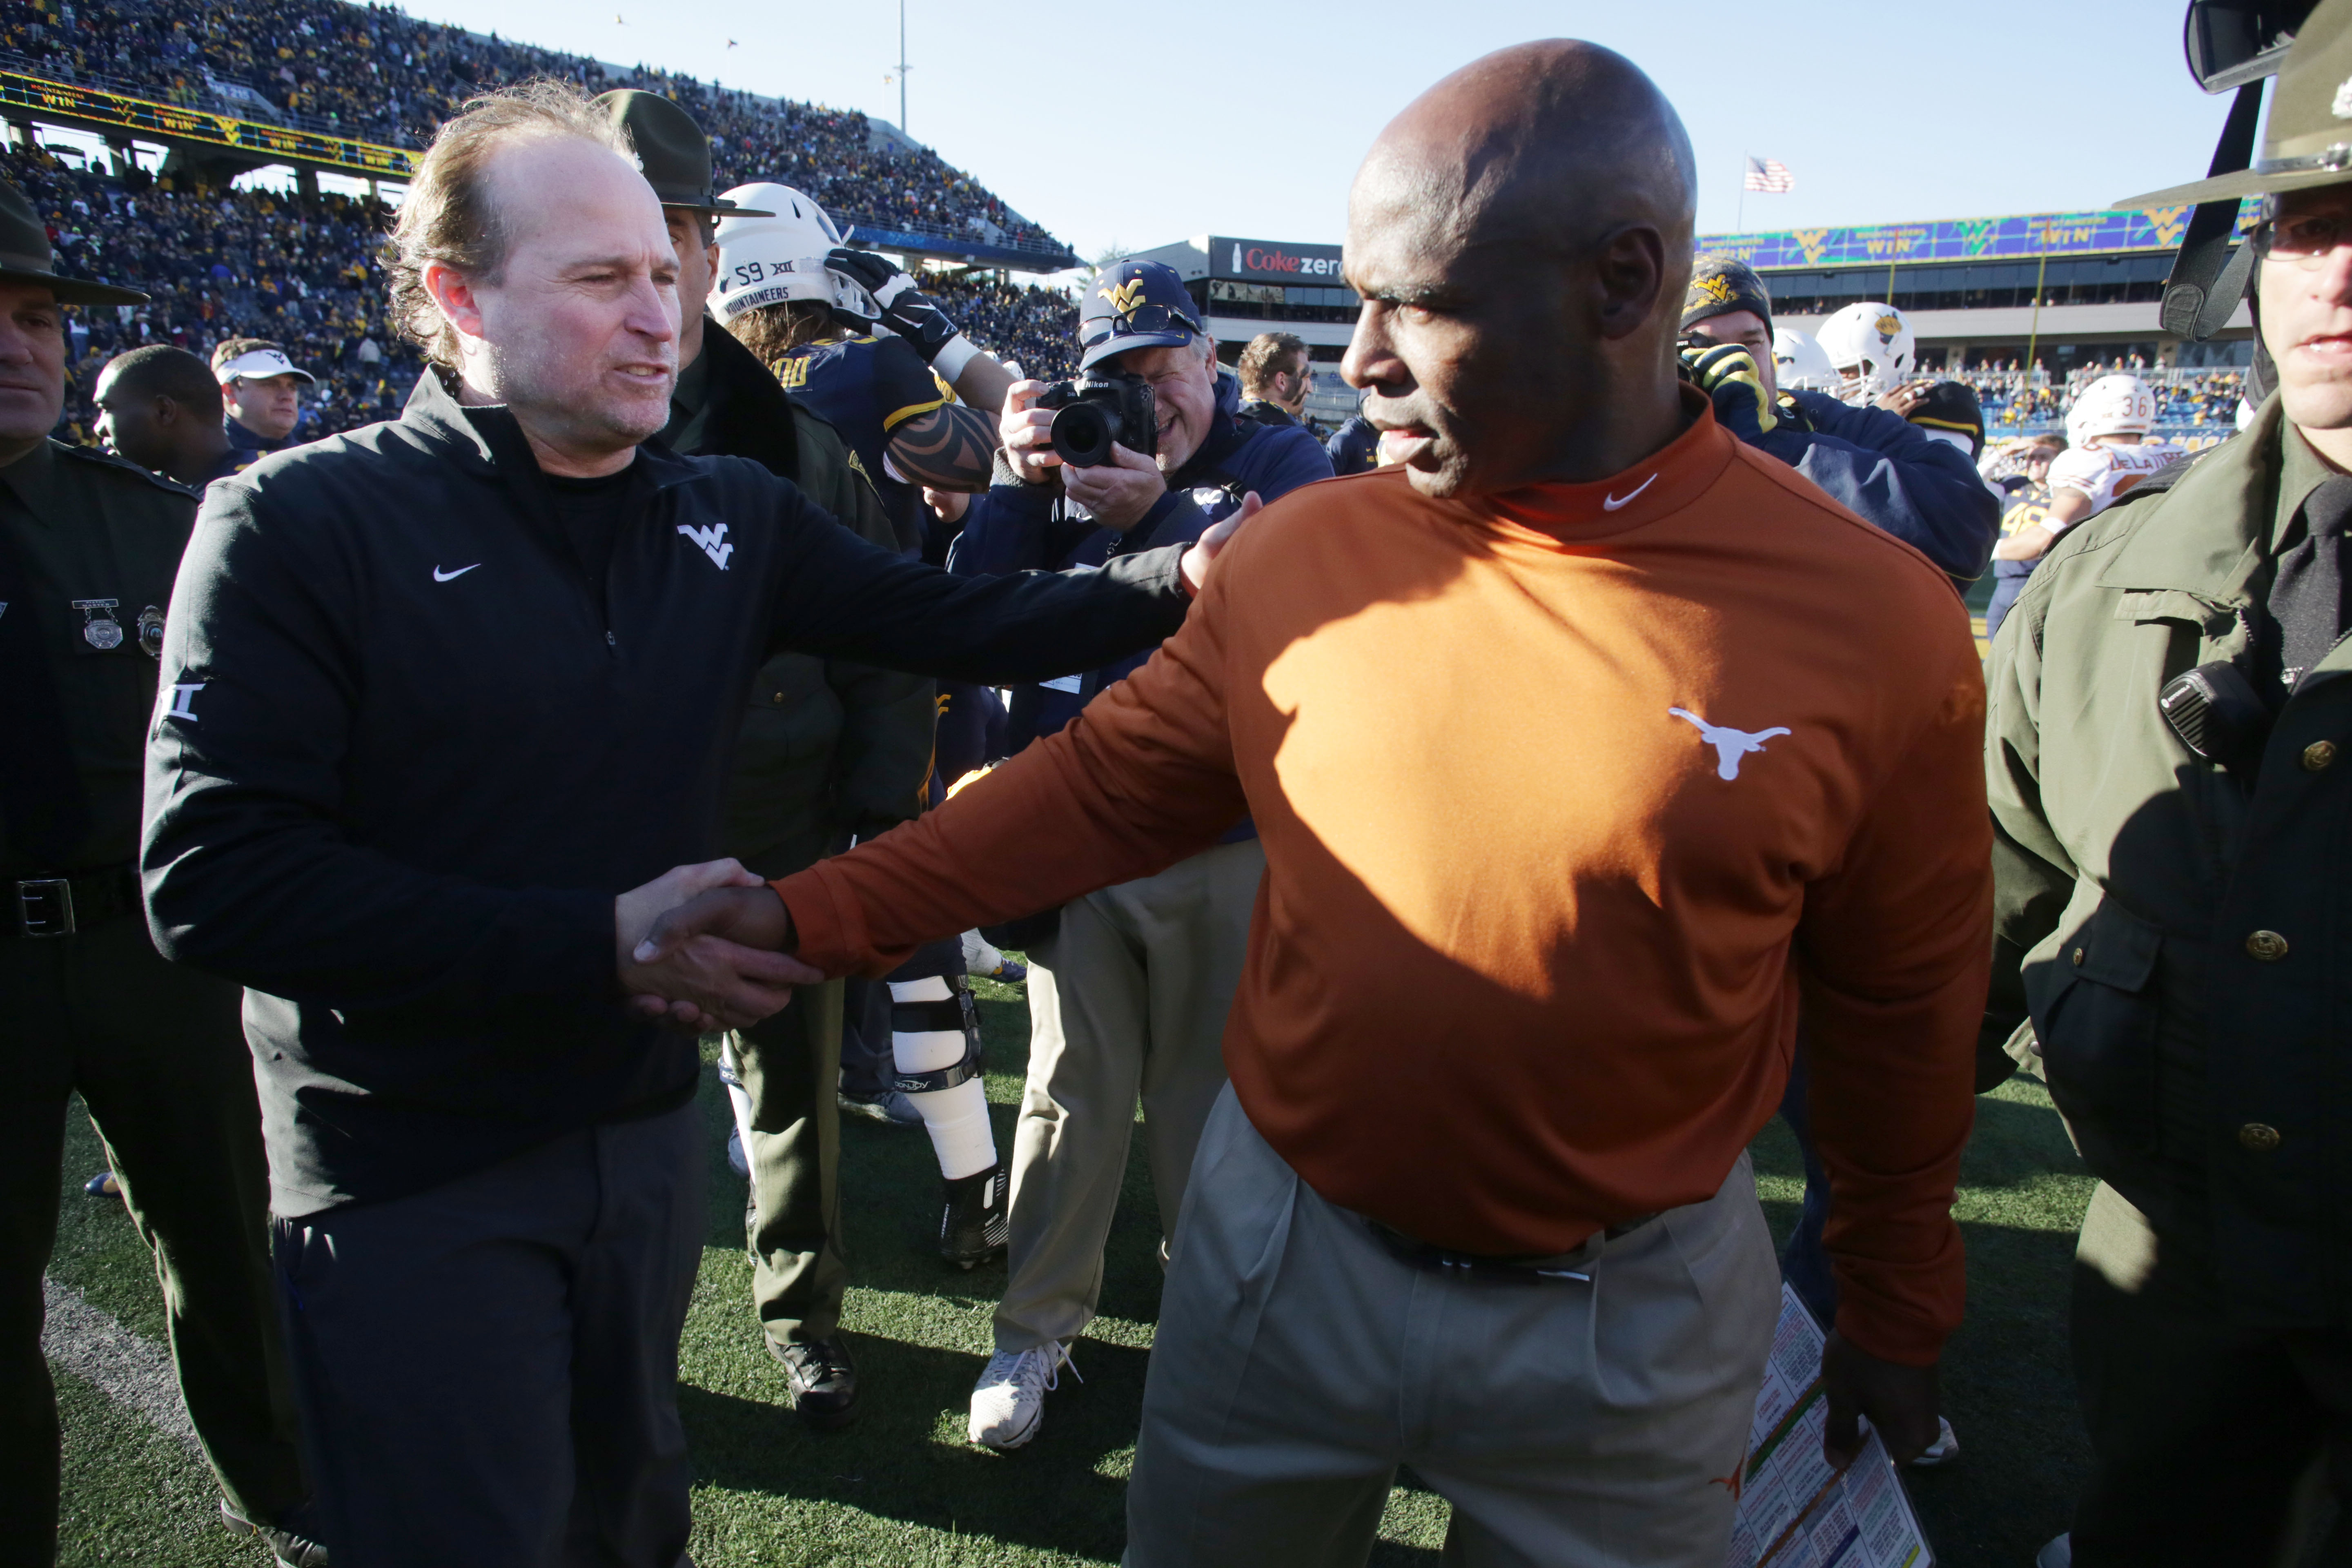 West Virginia head coach Dana Holgorsen, left, and Texas head coach Charlie Strong shakes hands at the end of an NCAA college football game, Saturday, Nov. 14, 2015, in Morgantown, W.Va. (AP Photo/Raymond Thompson)